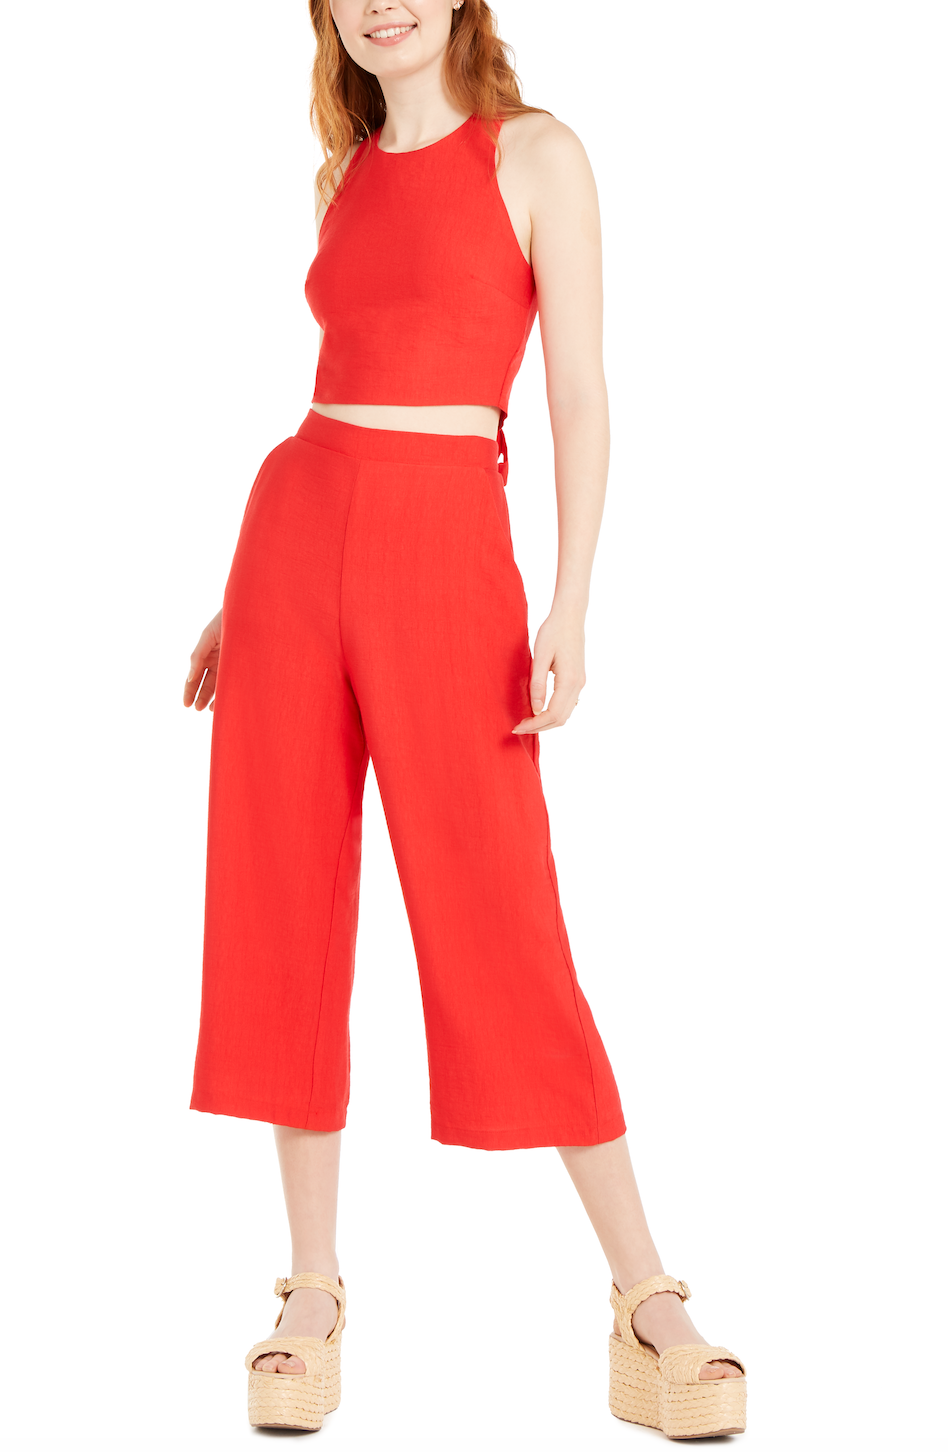 Description: JUNIORS' 2 PIECE BOW-BACK CROP TOP AND PANTS, Price: $24.84, Availability: Macy's stores and macys.com